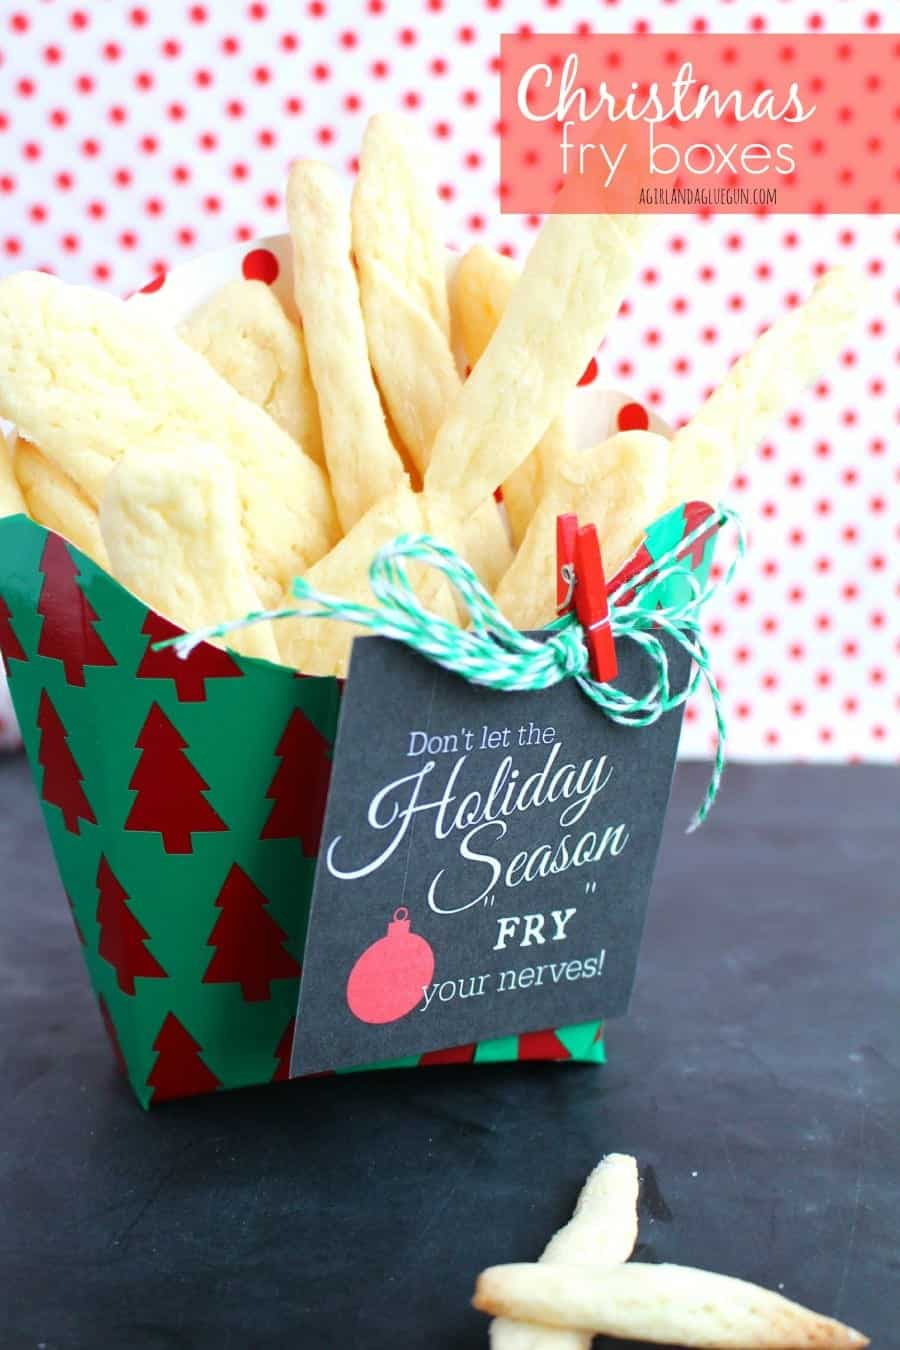 Christmas fry boxes